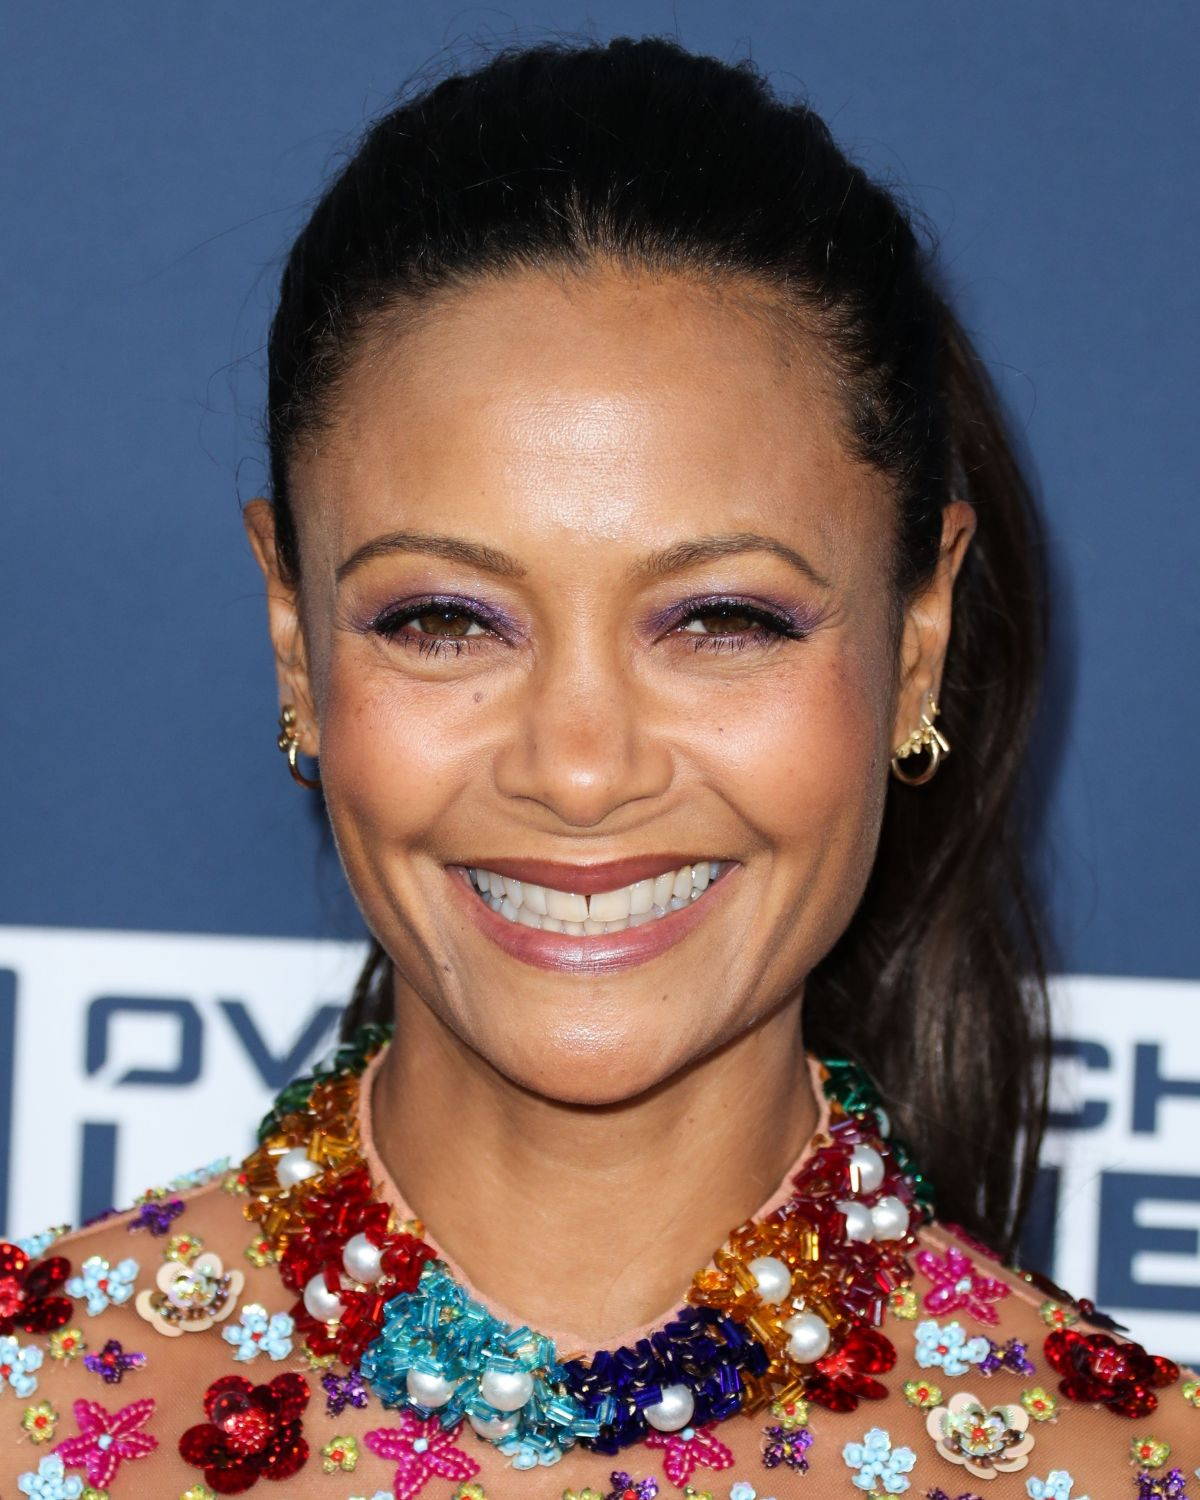 THANDIE NEWTON at Varietys Power of Young Hollywood in